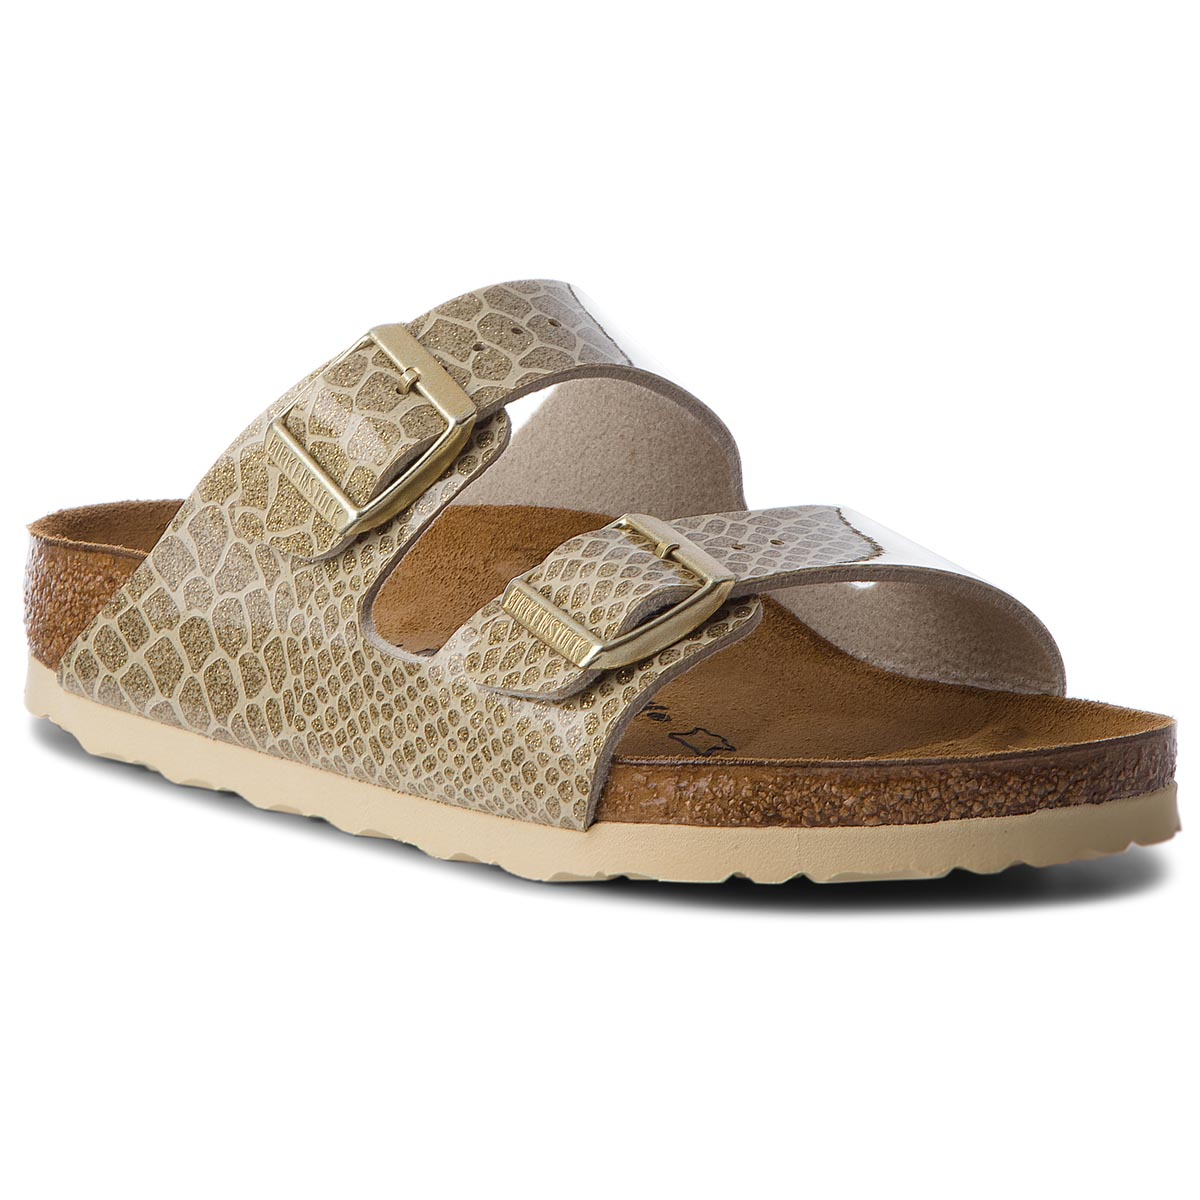 Klapki BIRKENSTOCK - Arizona Bs 1011765 Magic Snake Gold